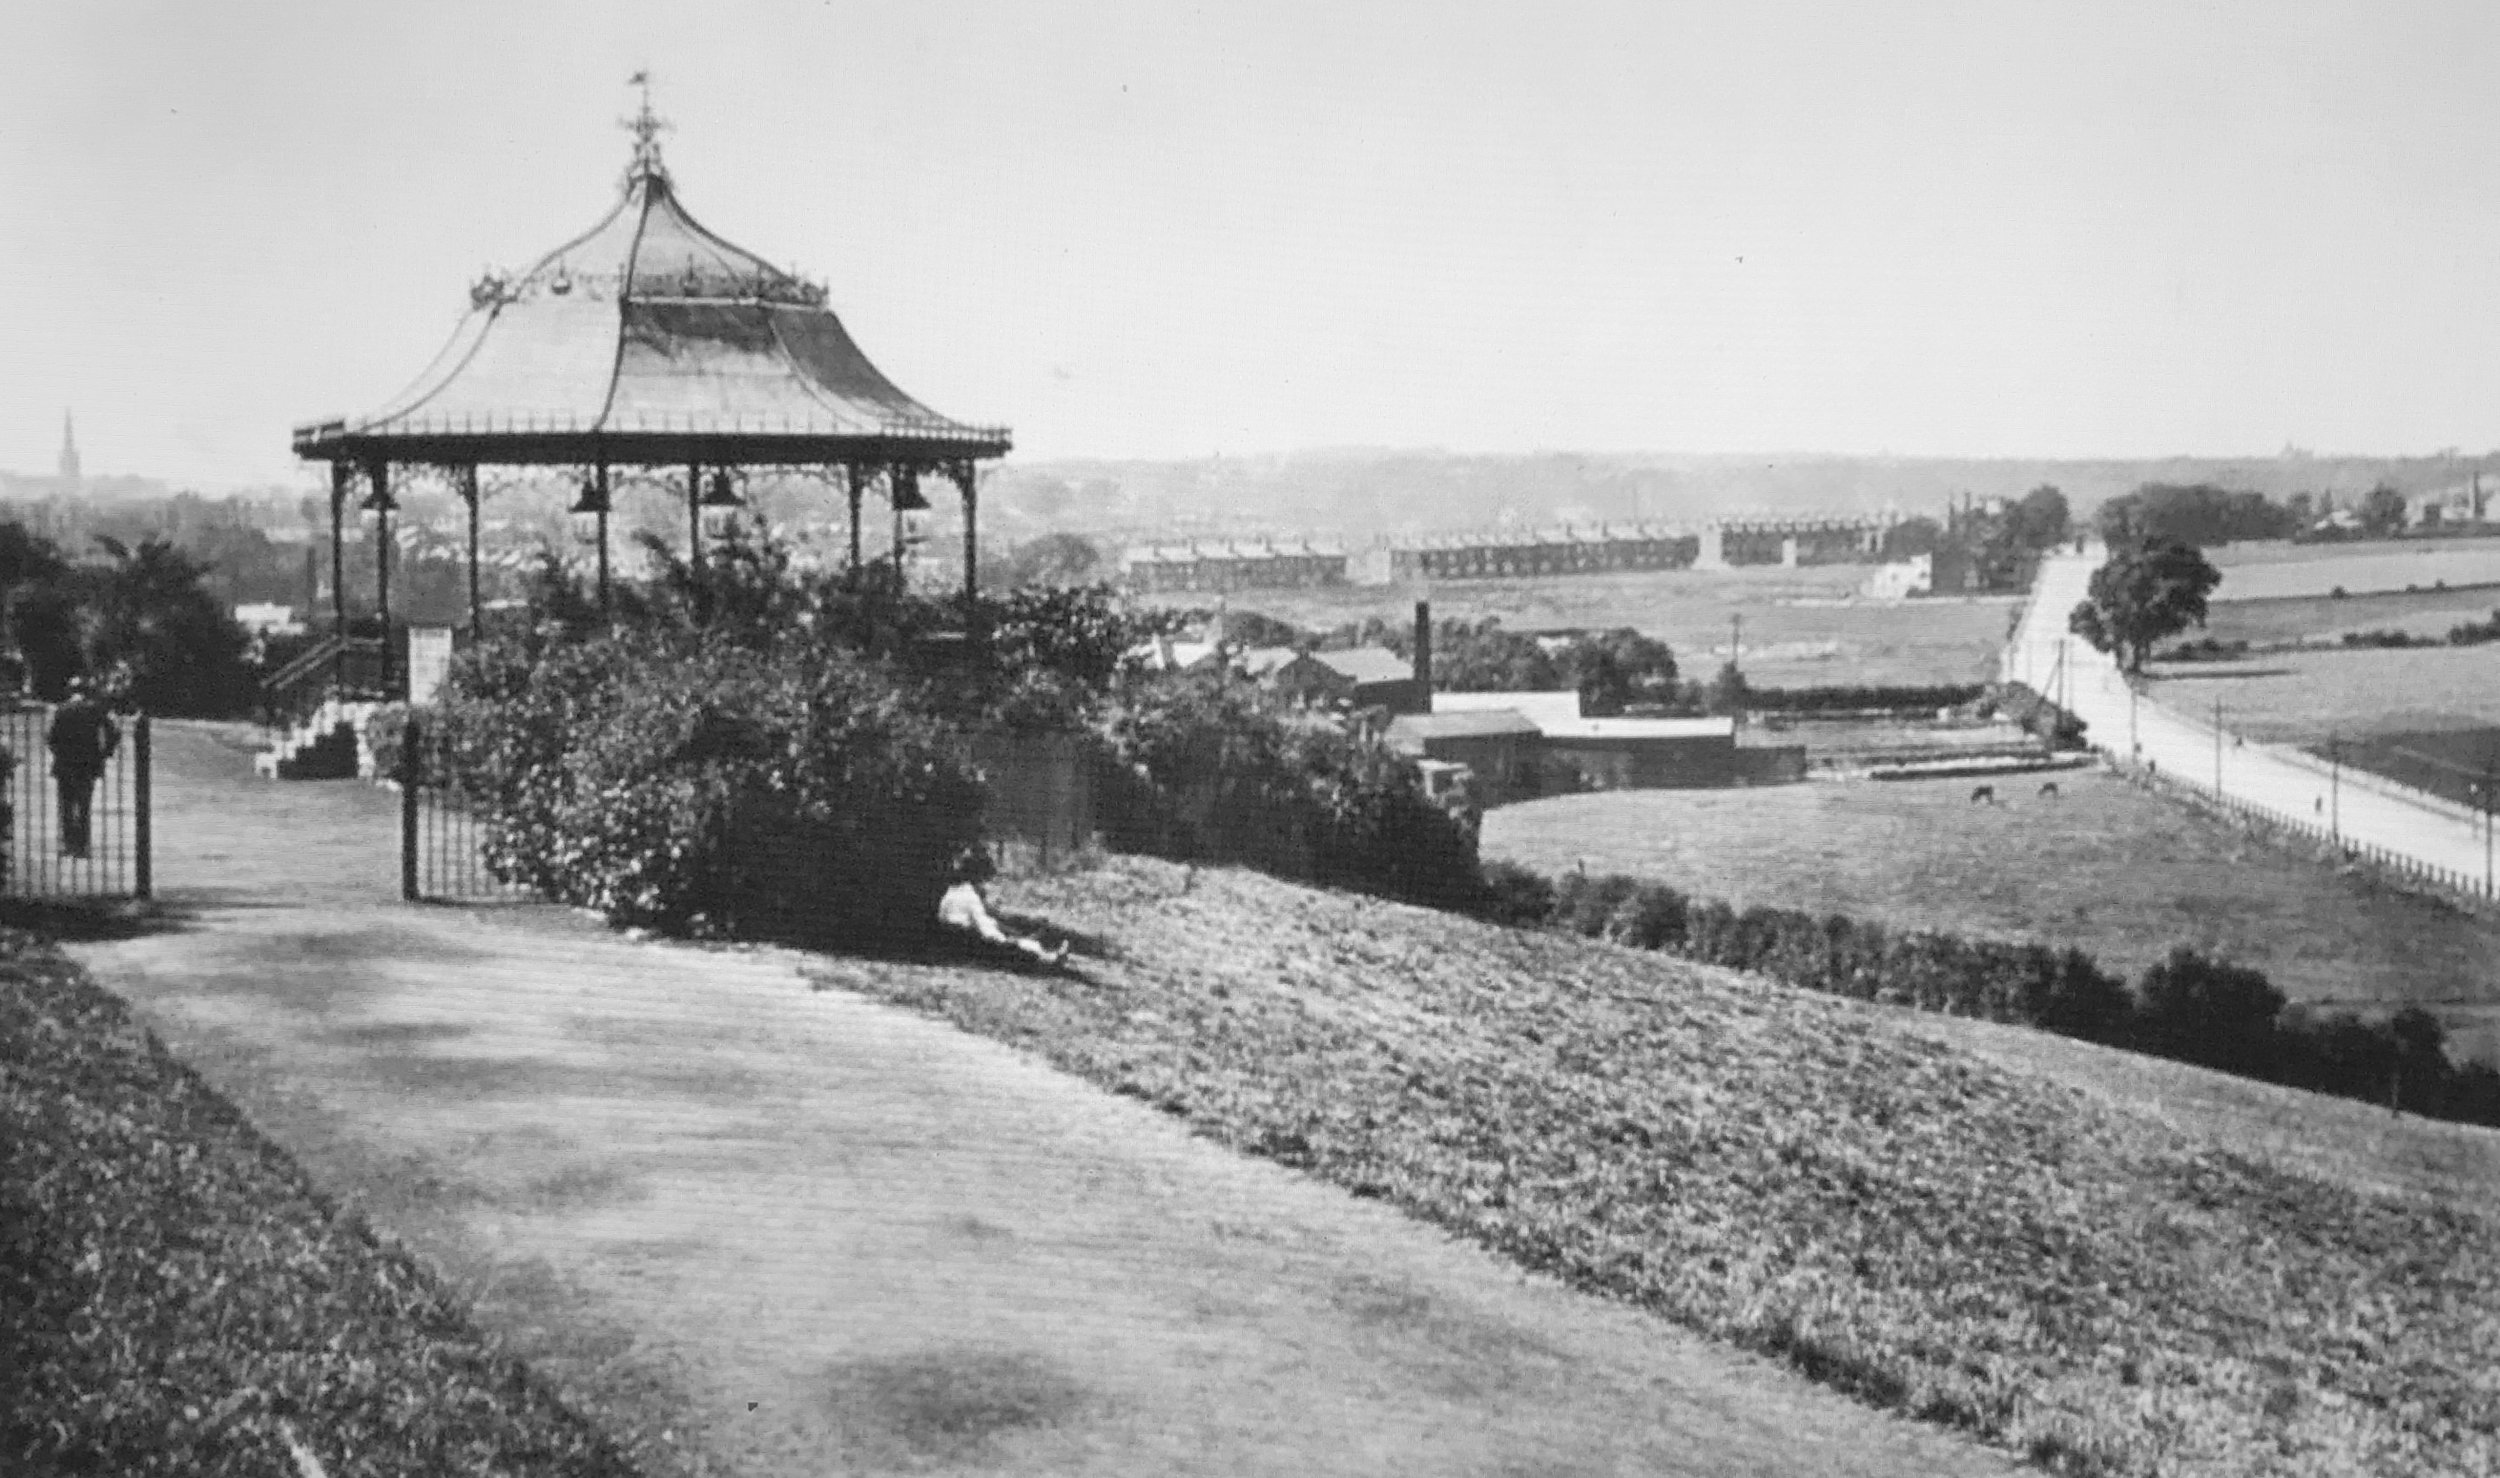 Woodhouse Ridge Bandstand and Meanwood Road, view North, early 1900s